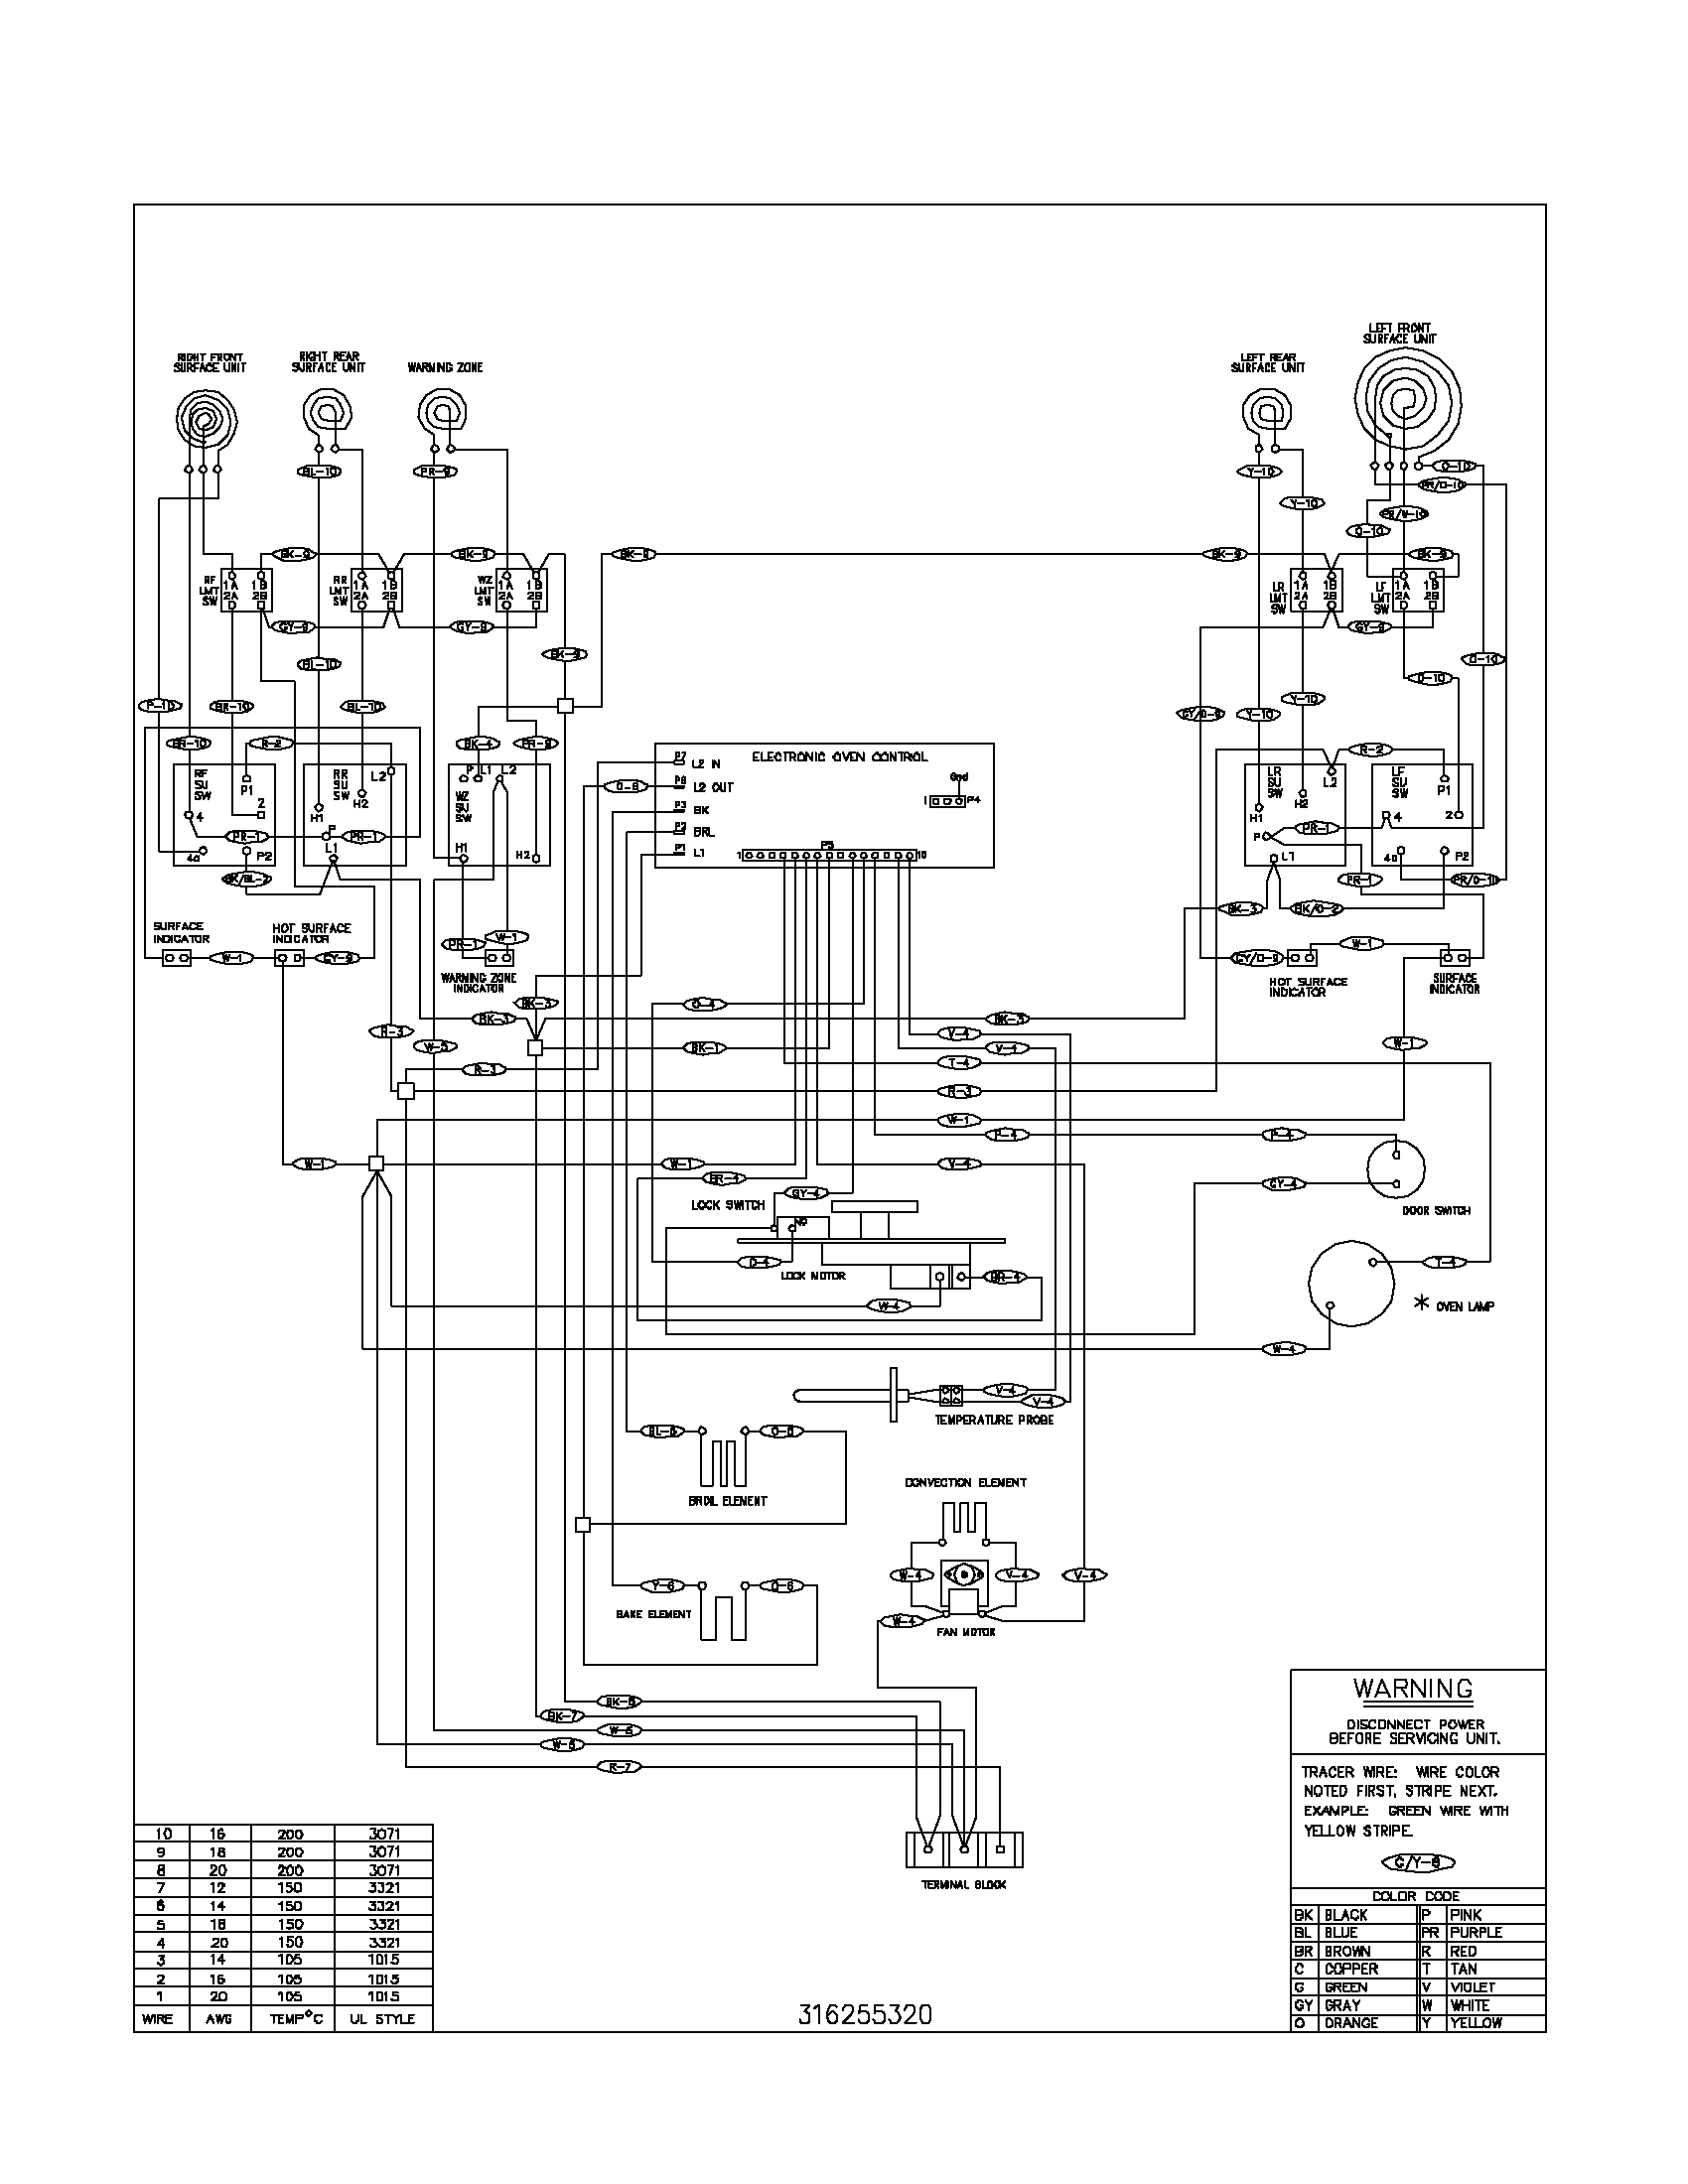 Kitchen Stove Wiring Diagram - Touch Wiring Diagrams